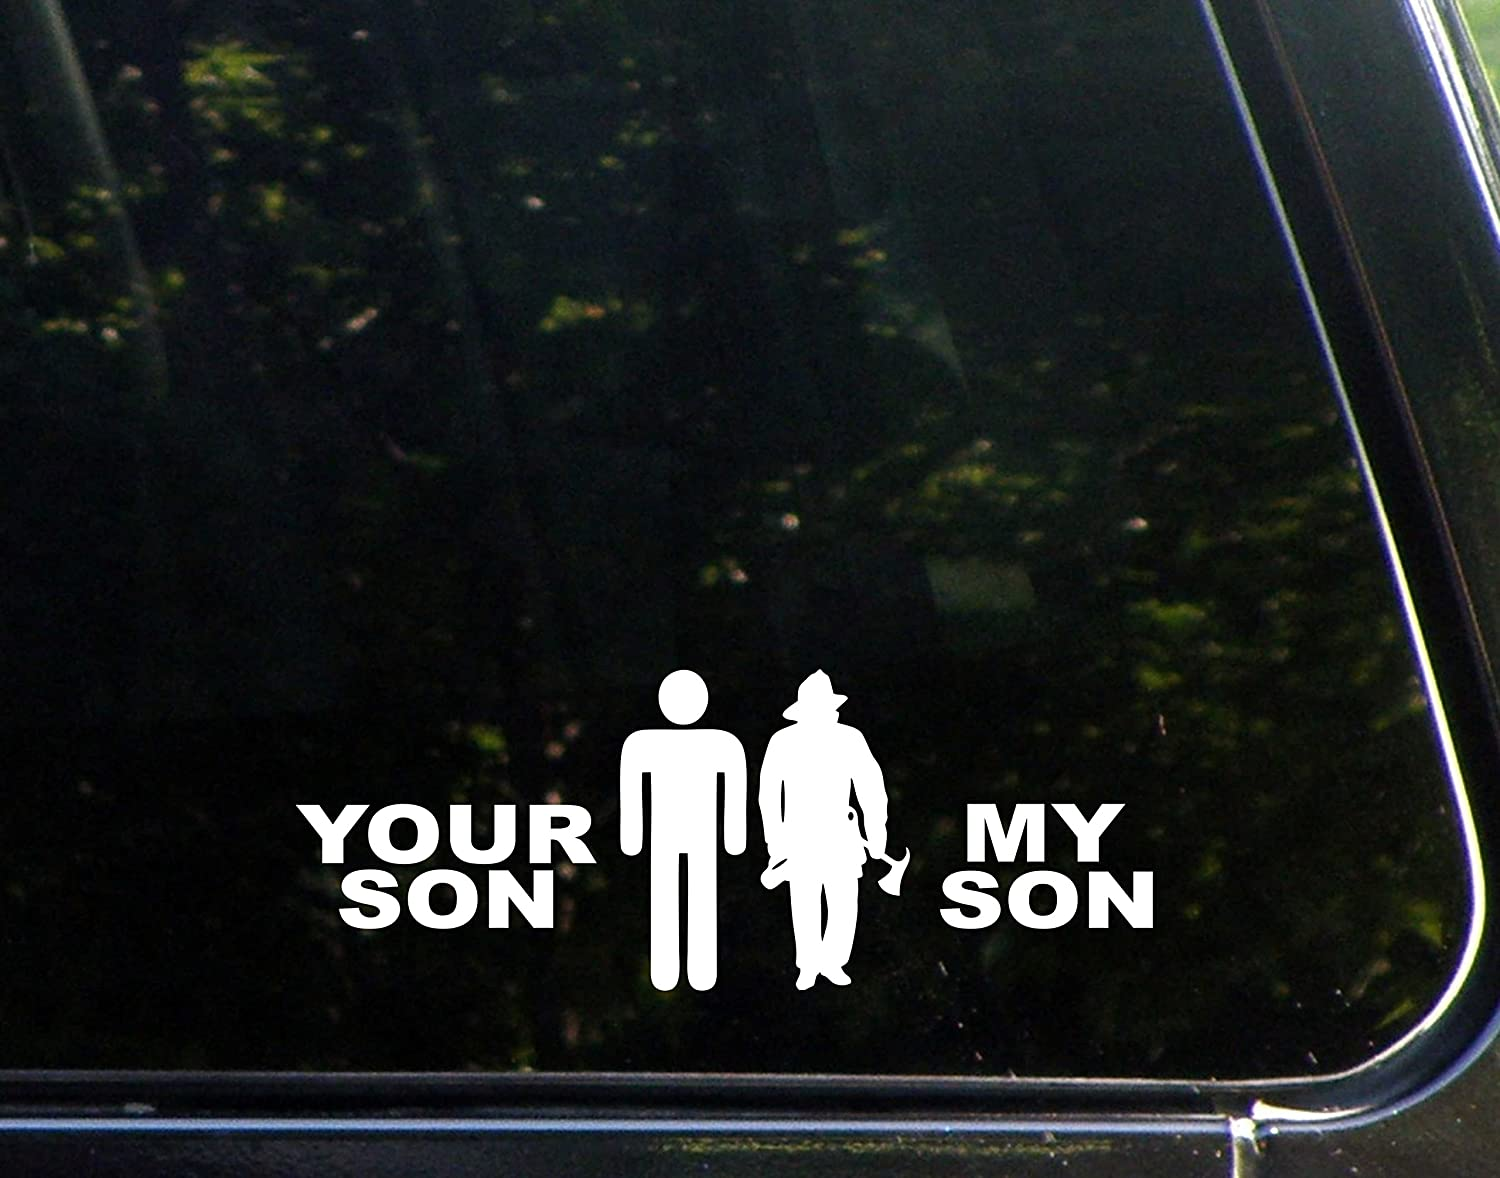 Amazoncom Your Son My Son FIREFIGHTER X Die Cut Decal - Office depot window decals instructions